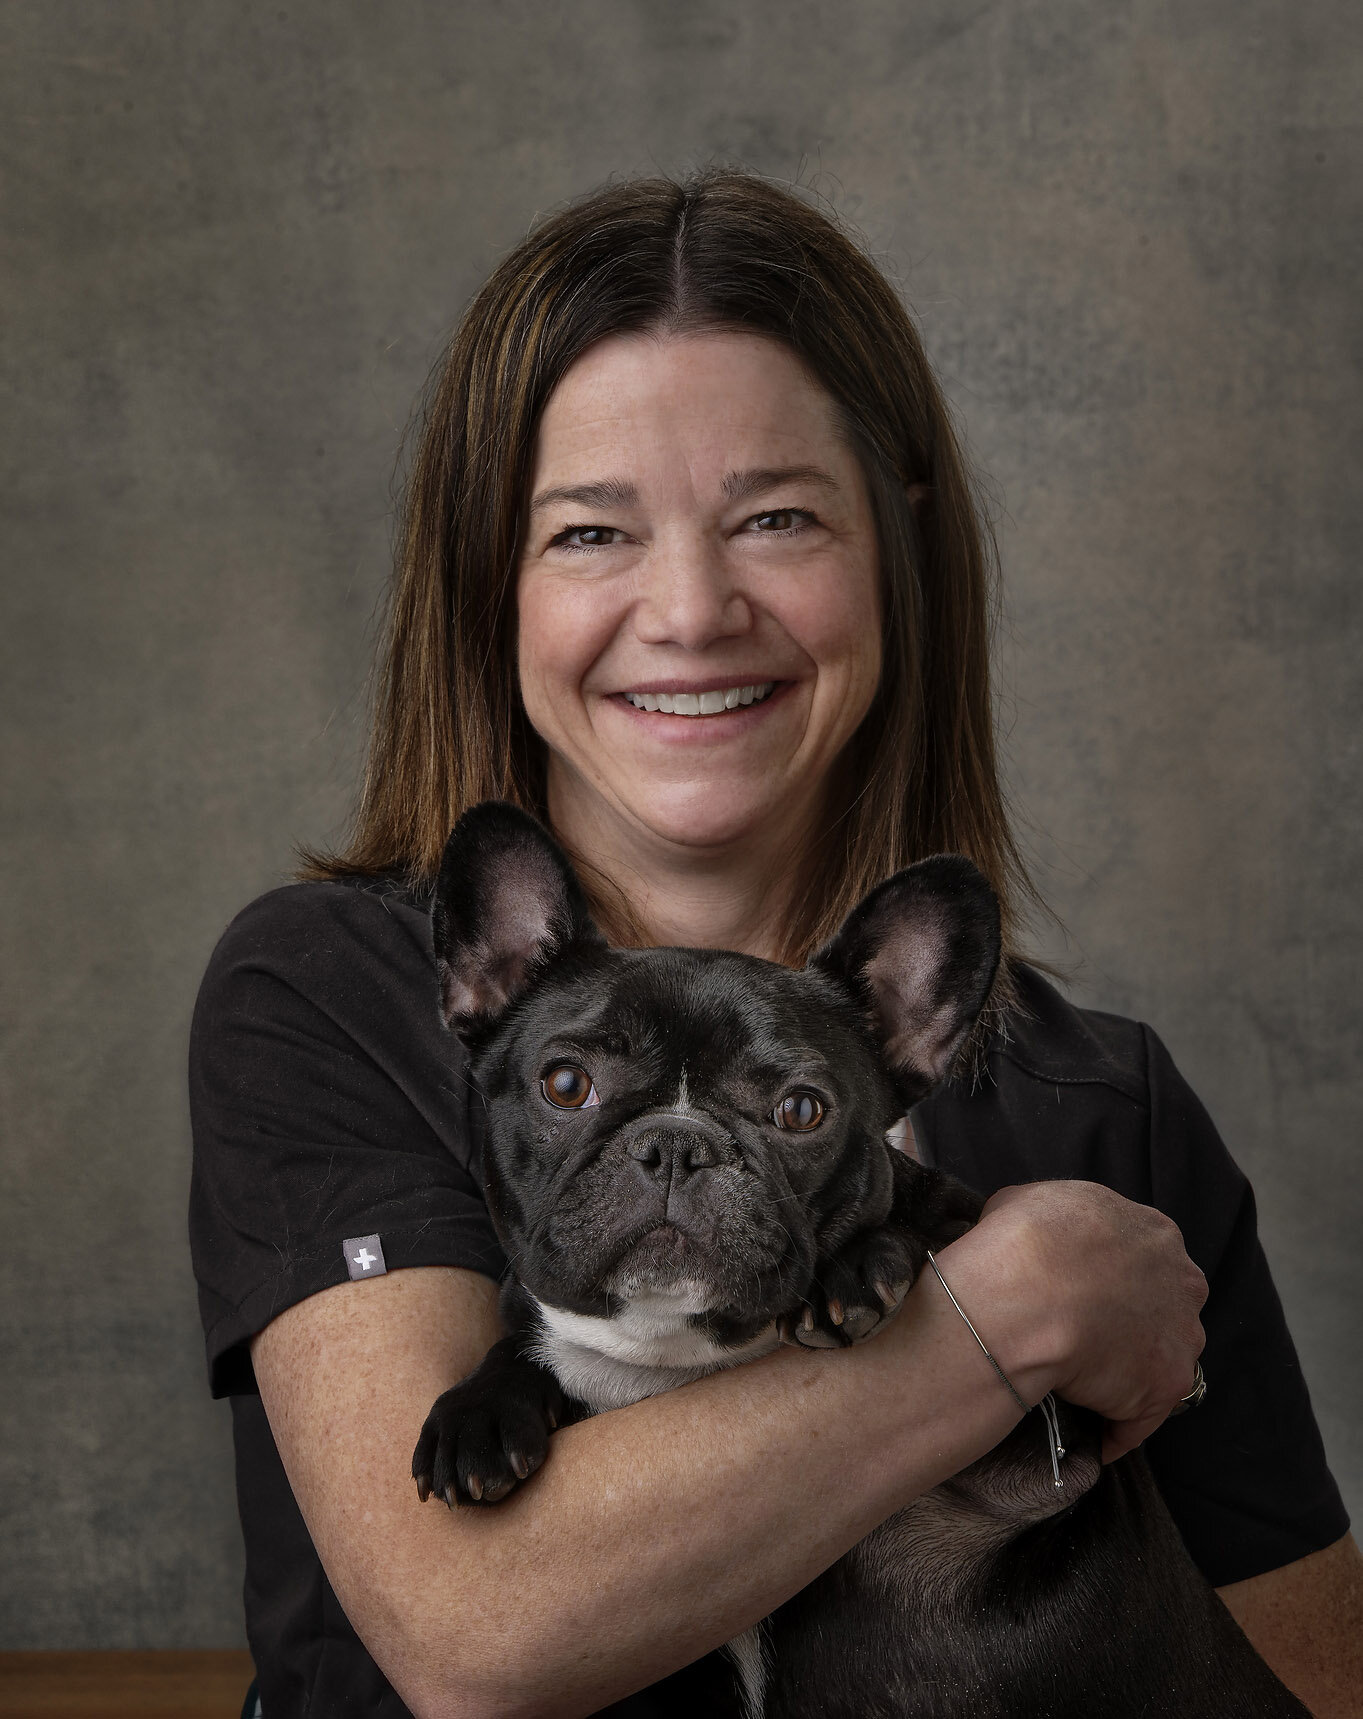 Portrait photo of Dr. Becky Valentine with her dog.